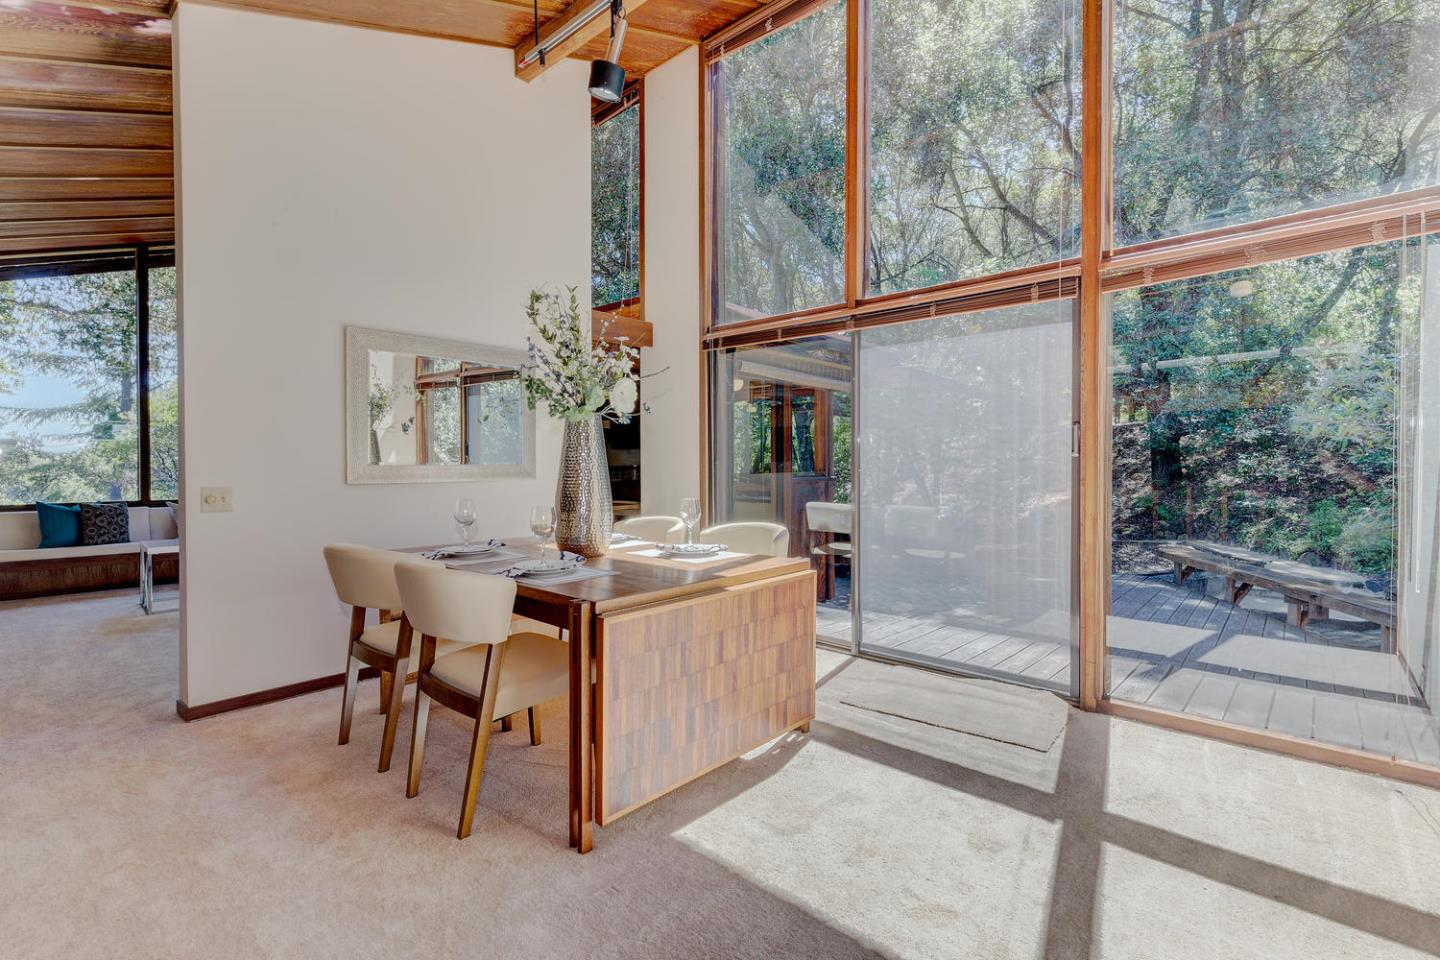 Additional photo for property listing at 101 Pecora Way  PORTOLA VALLEY, CALIFORNIA 94028